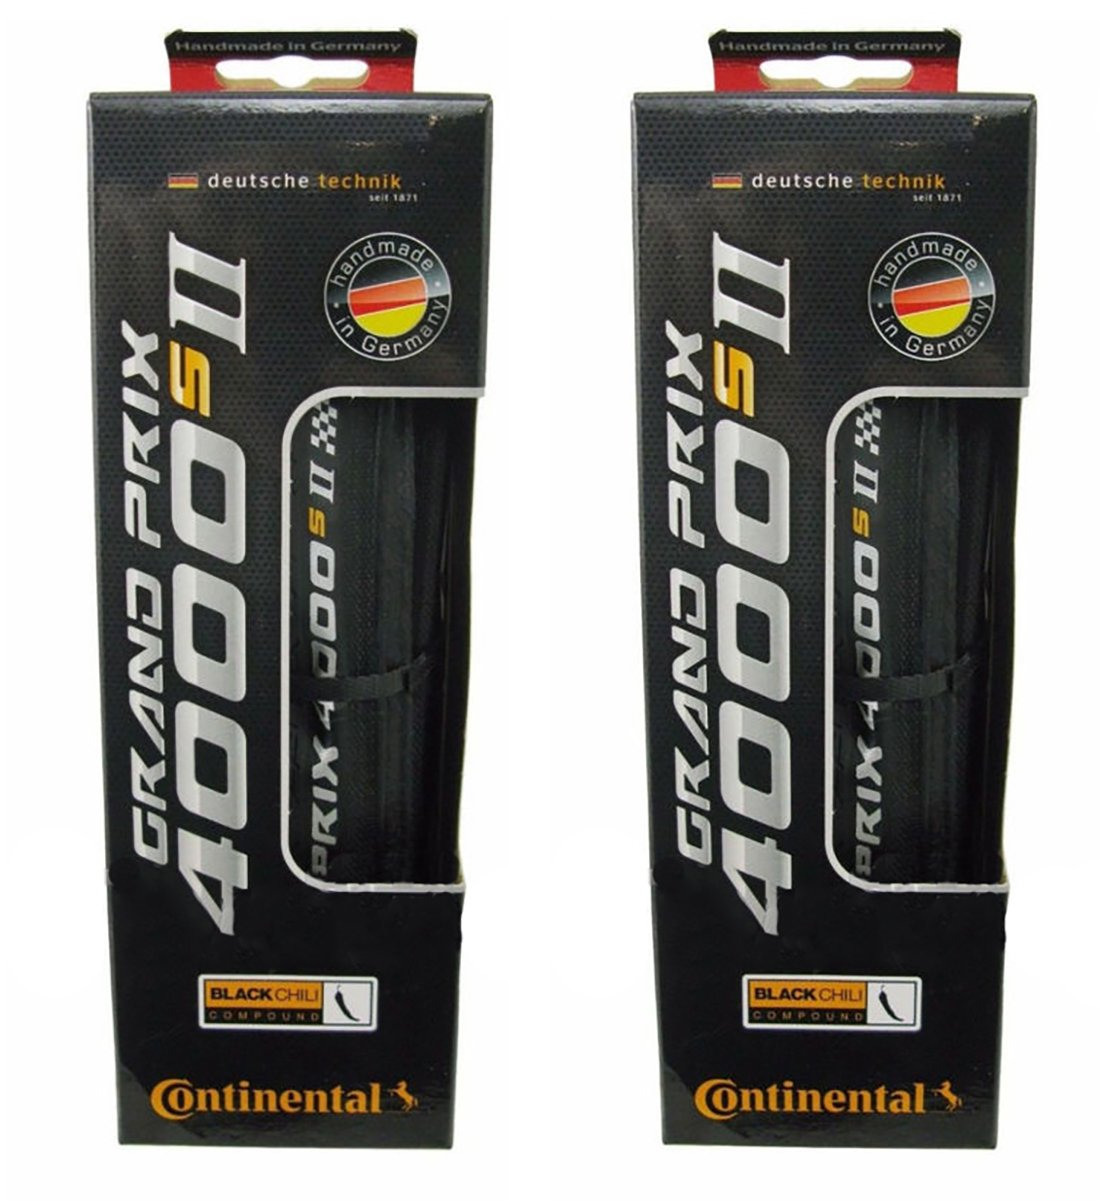 Continental Grand Prix 4000 S II Tire 700 x 25 700x25C Black Chili Reflex 2 Pack 0100946